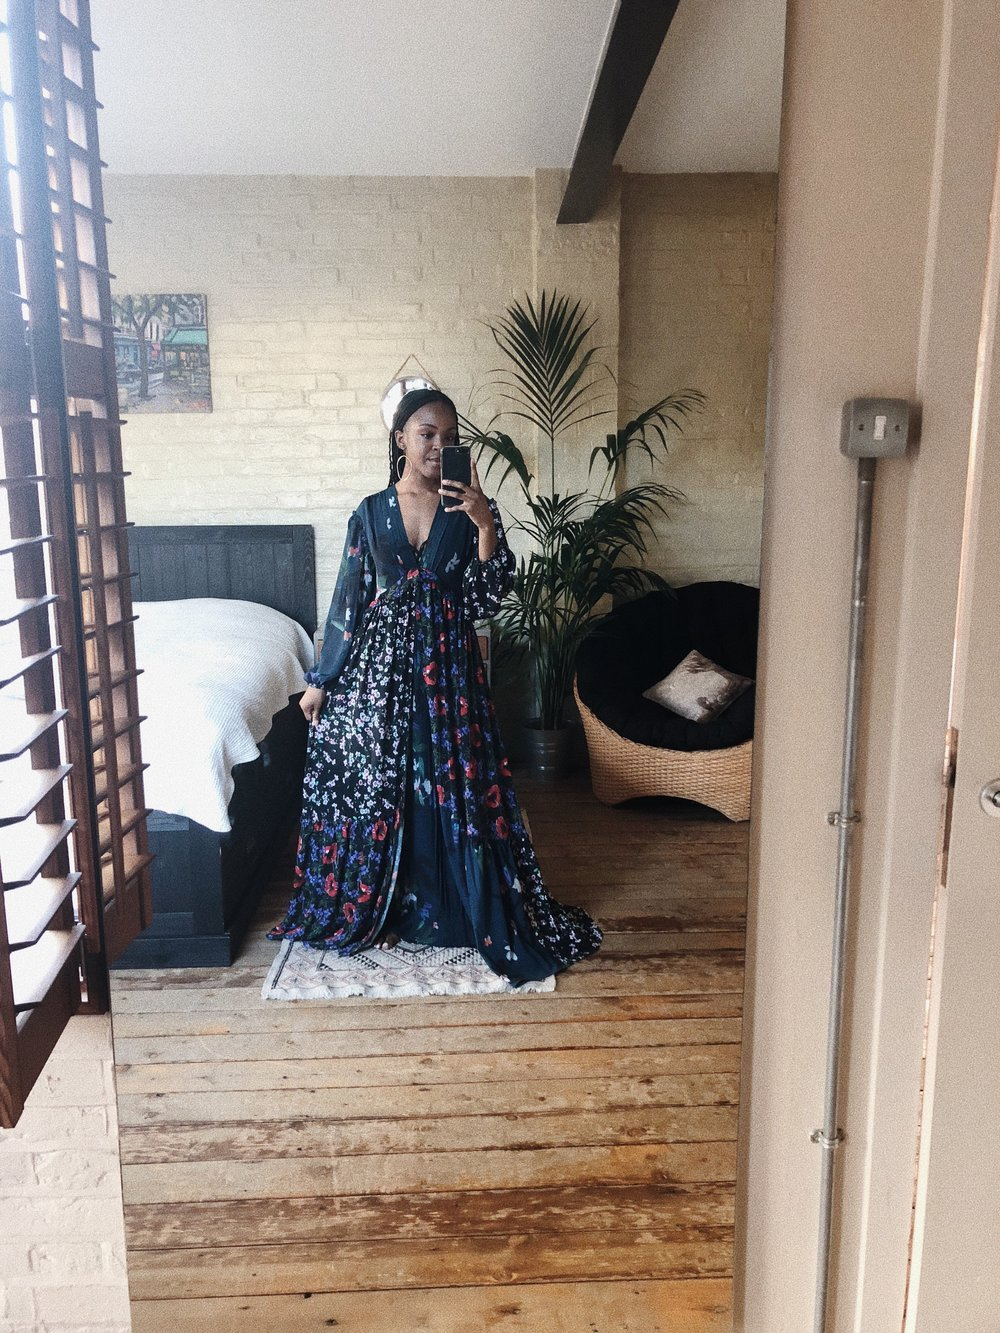 A woman wearing a floral maxi dress, surrounded by plants in a London apartment.